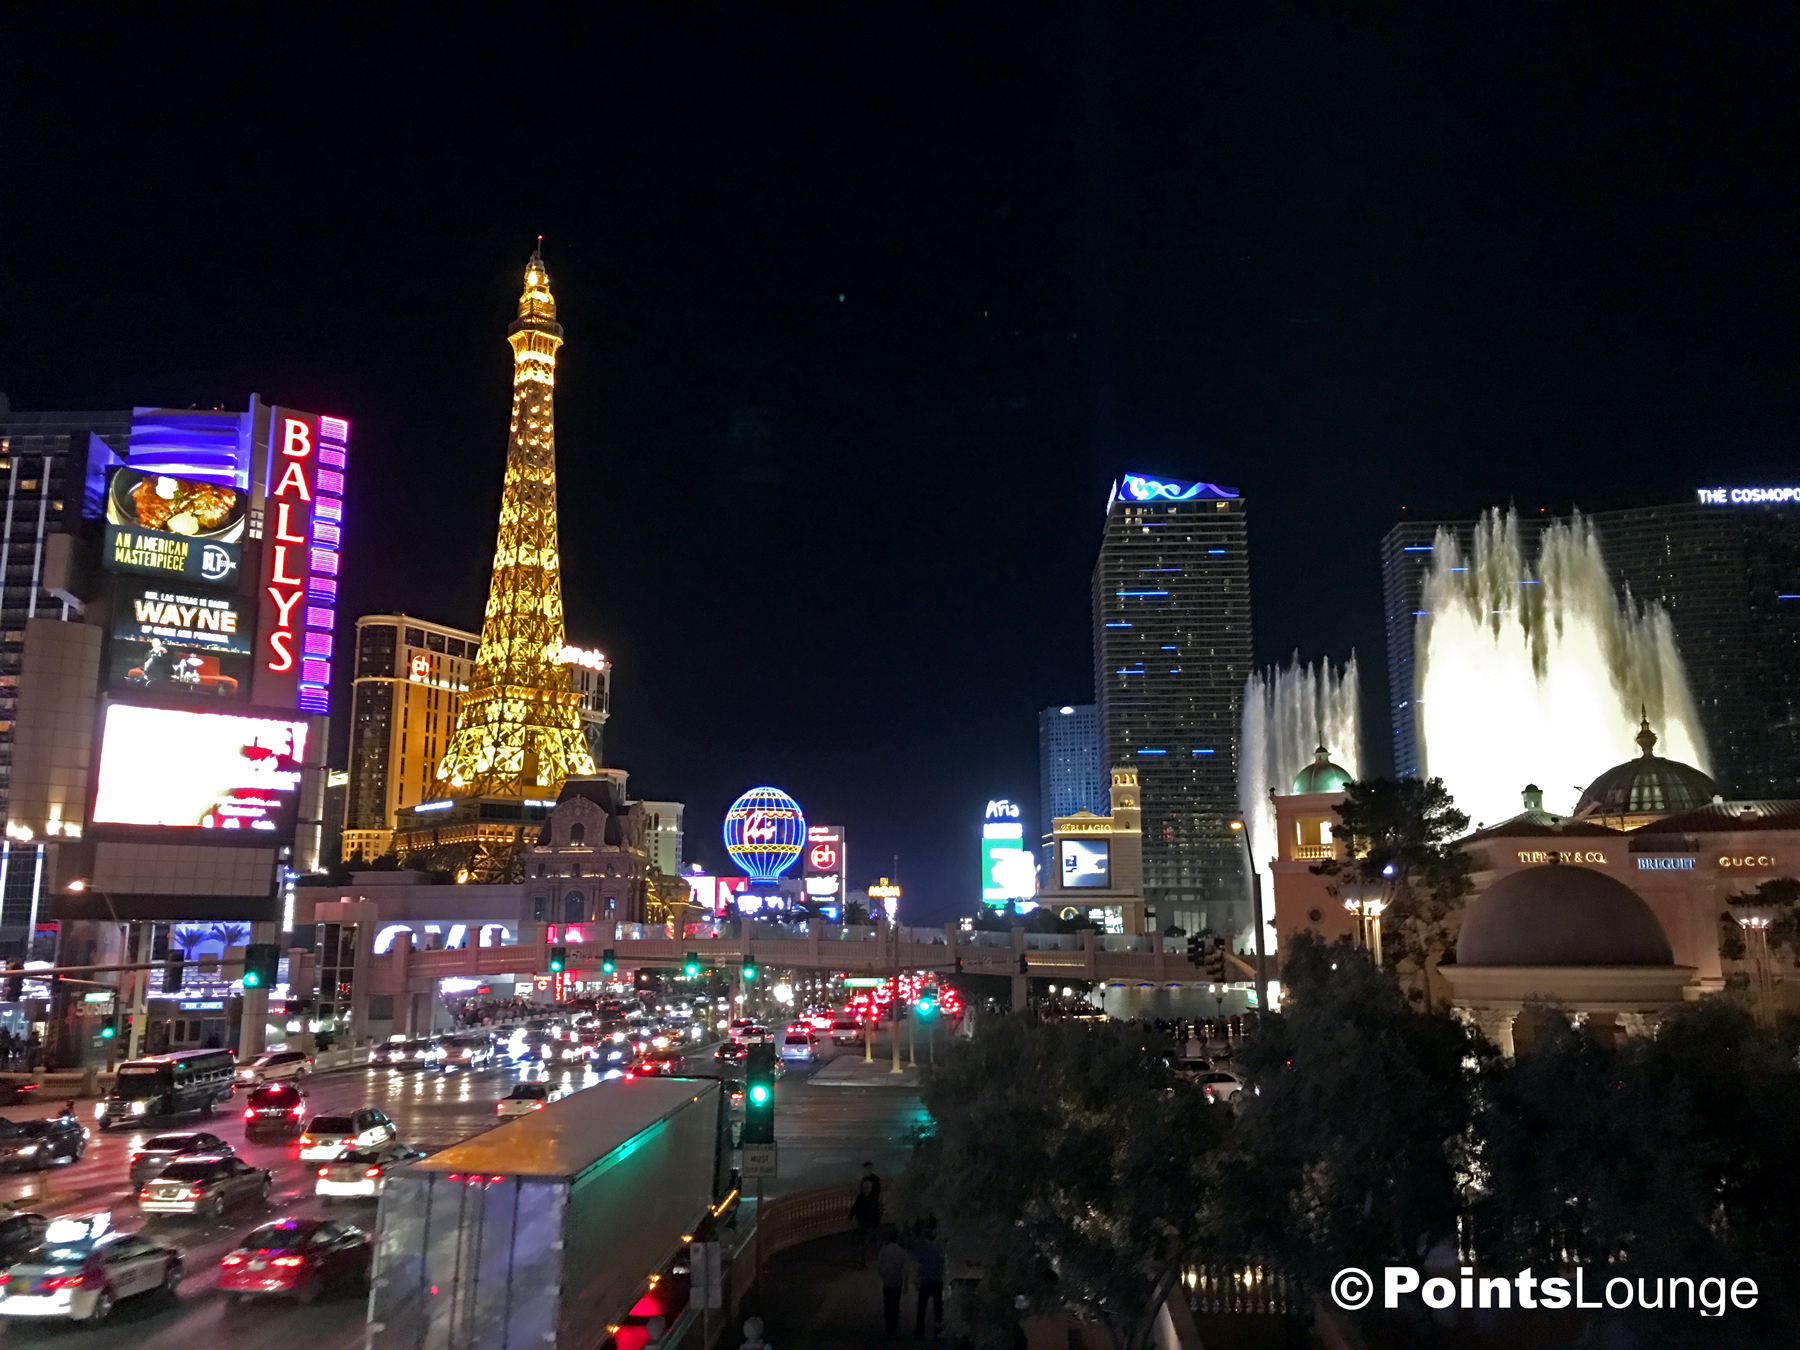 The Las Vegas Strip at night -- looking south from Caesars Palace.